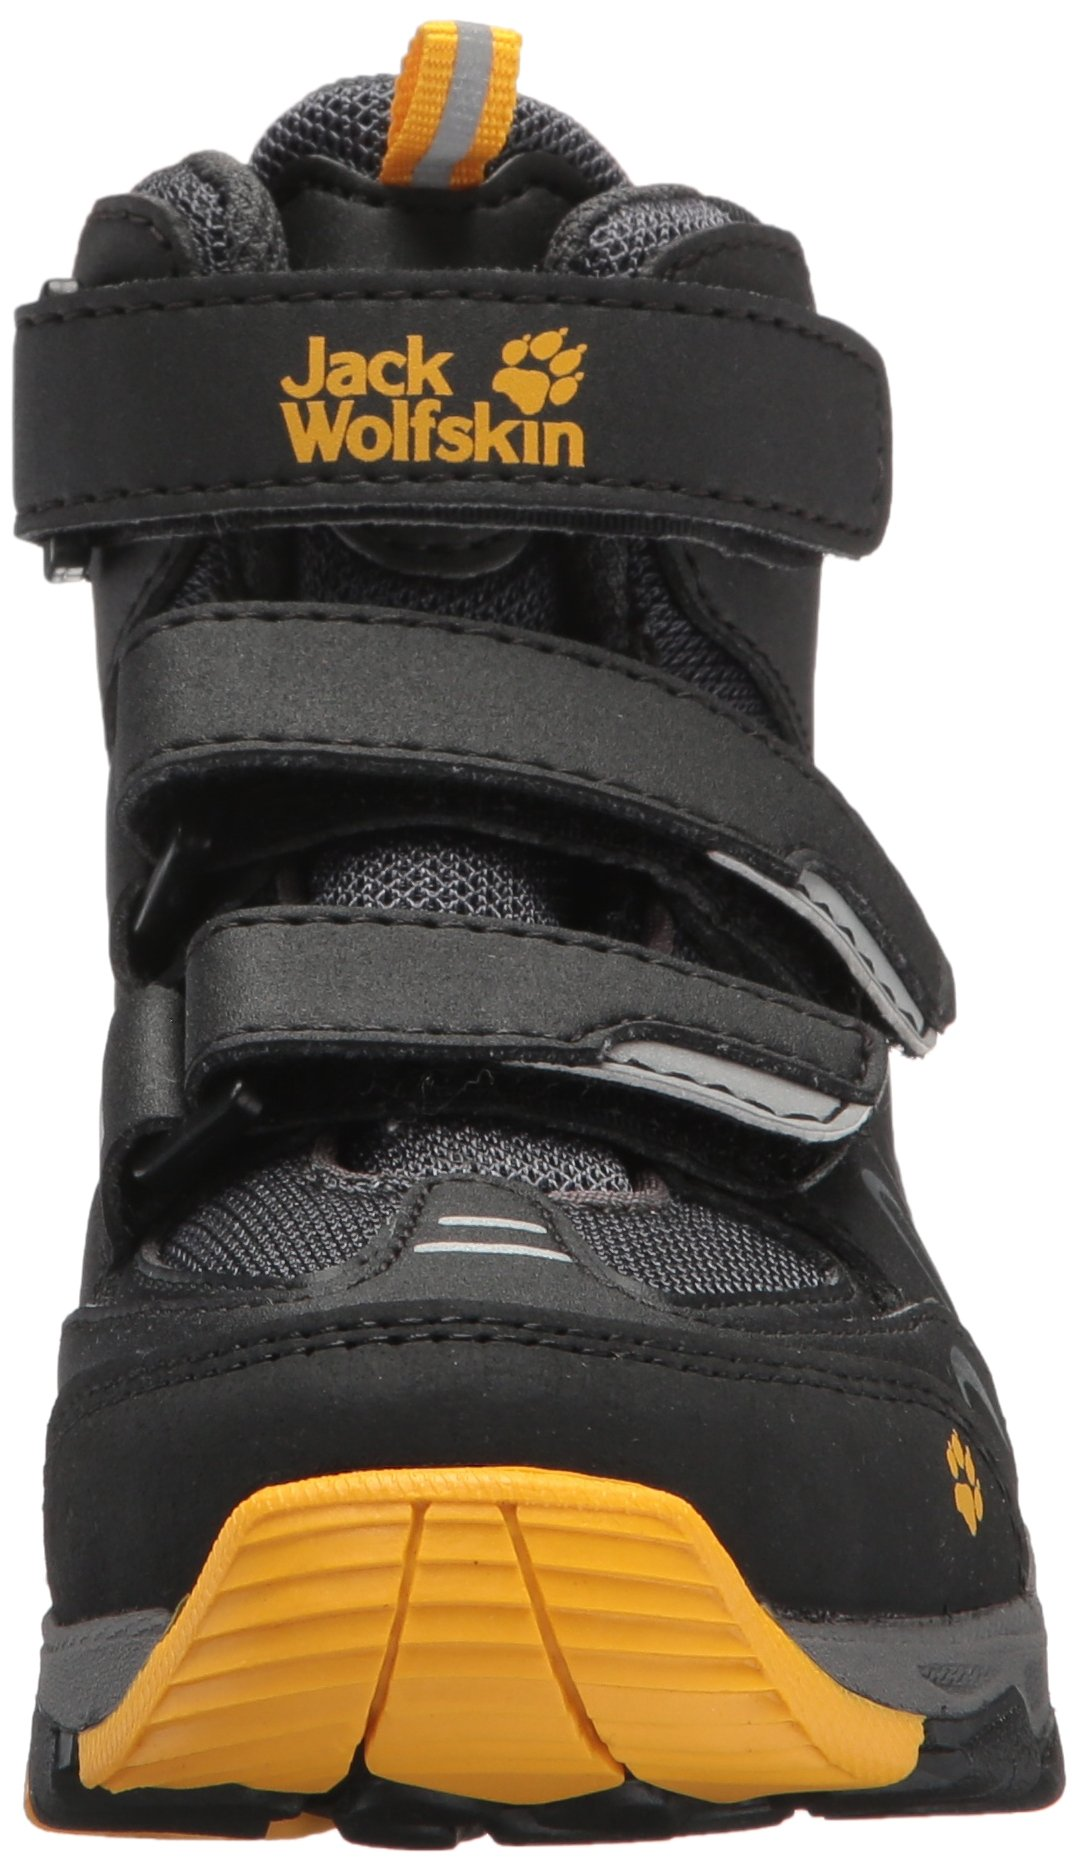 Jack Wolfskin Boy's Unisex Kids' MTN Attack 2 Texapore Mid Vc K High Rise Hiking Shoes Child 4